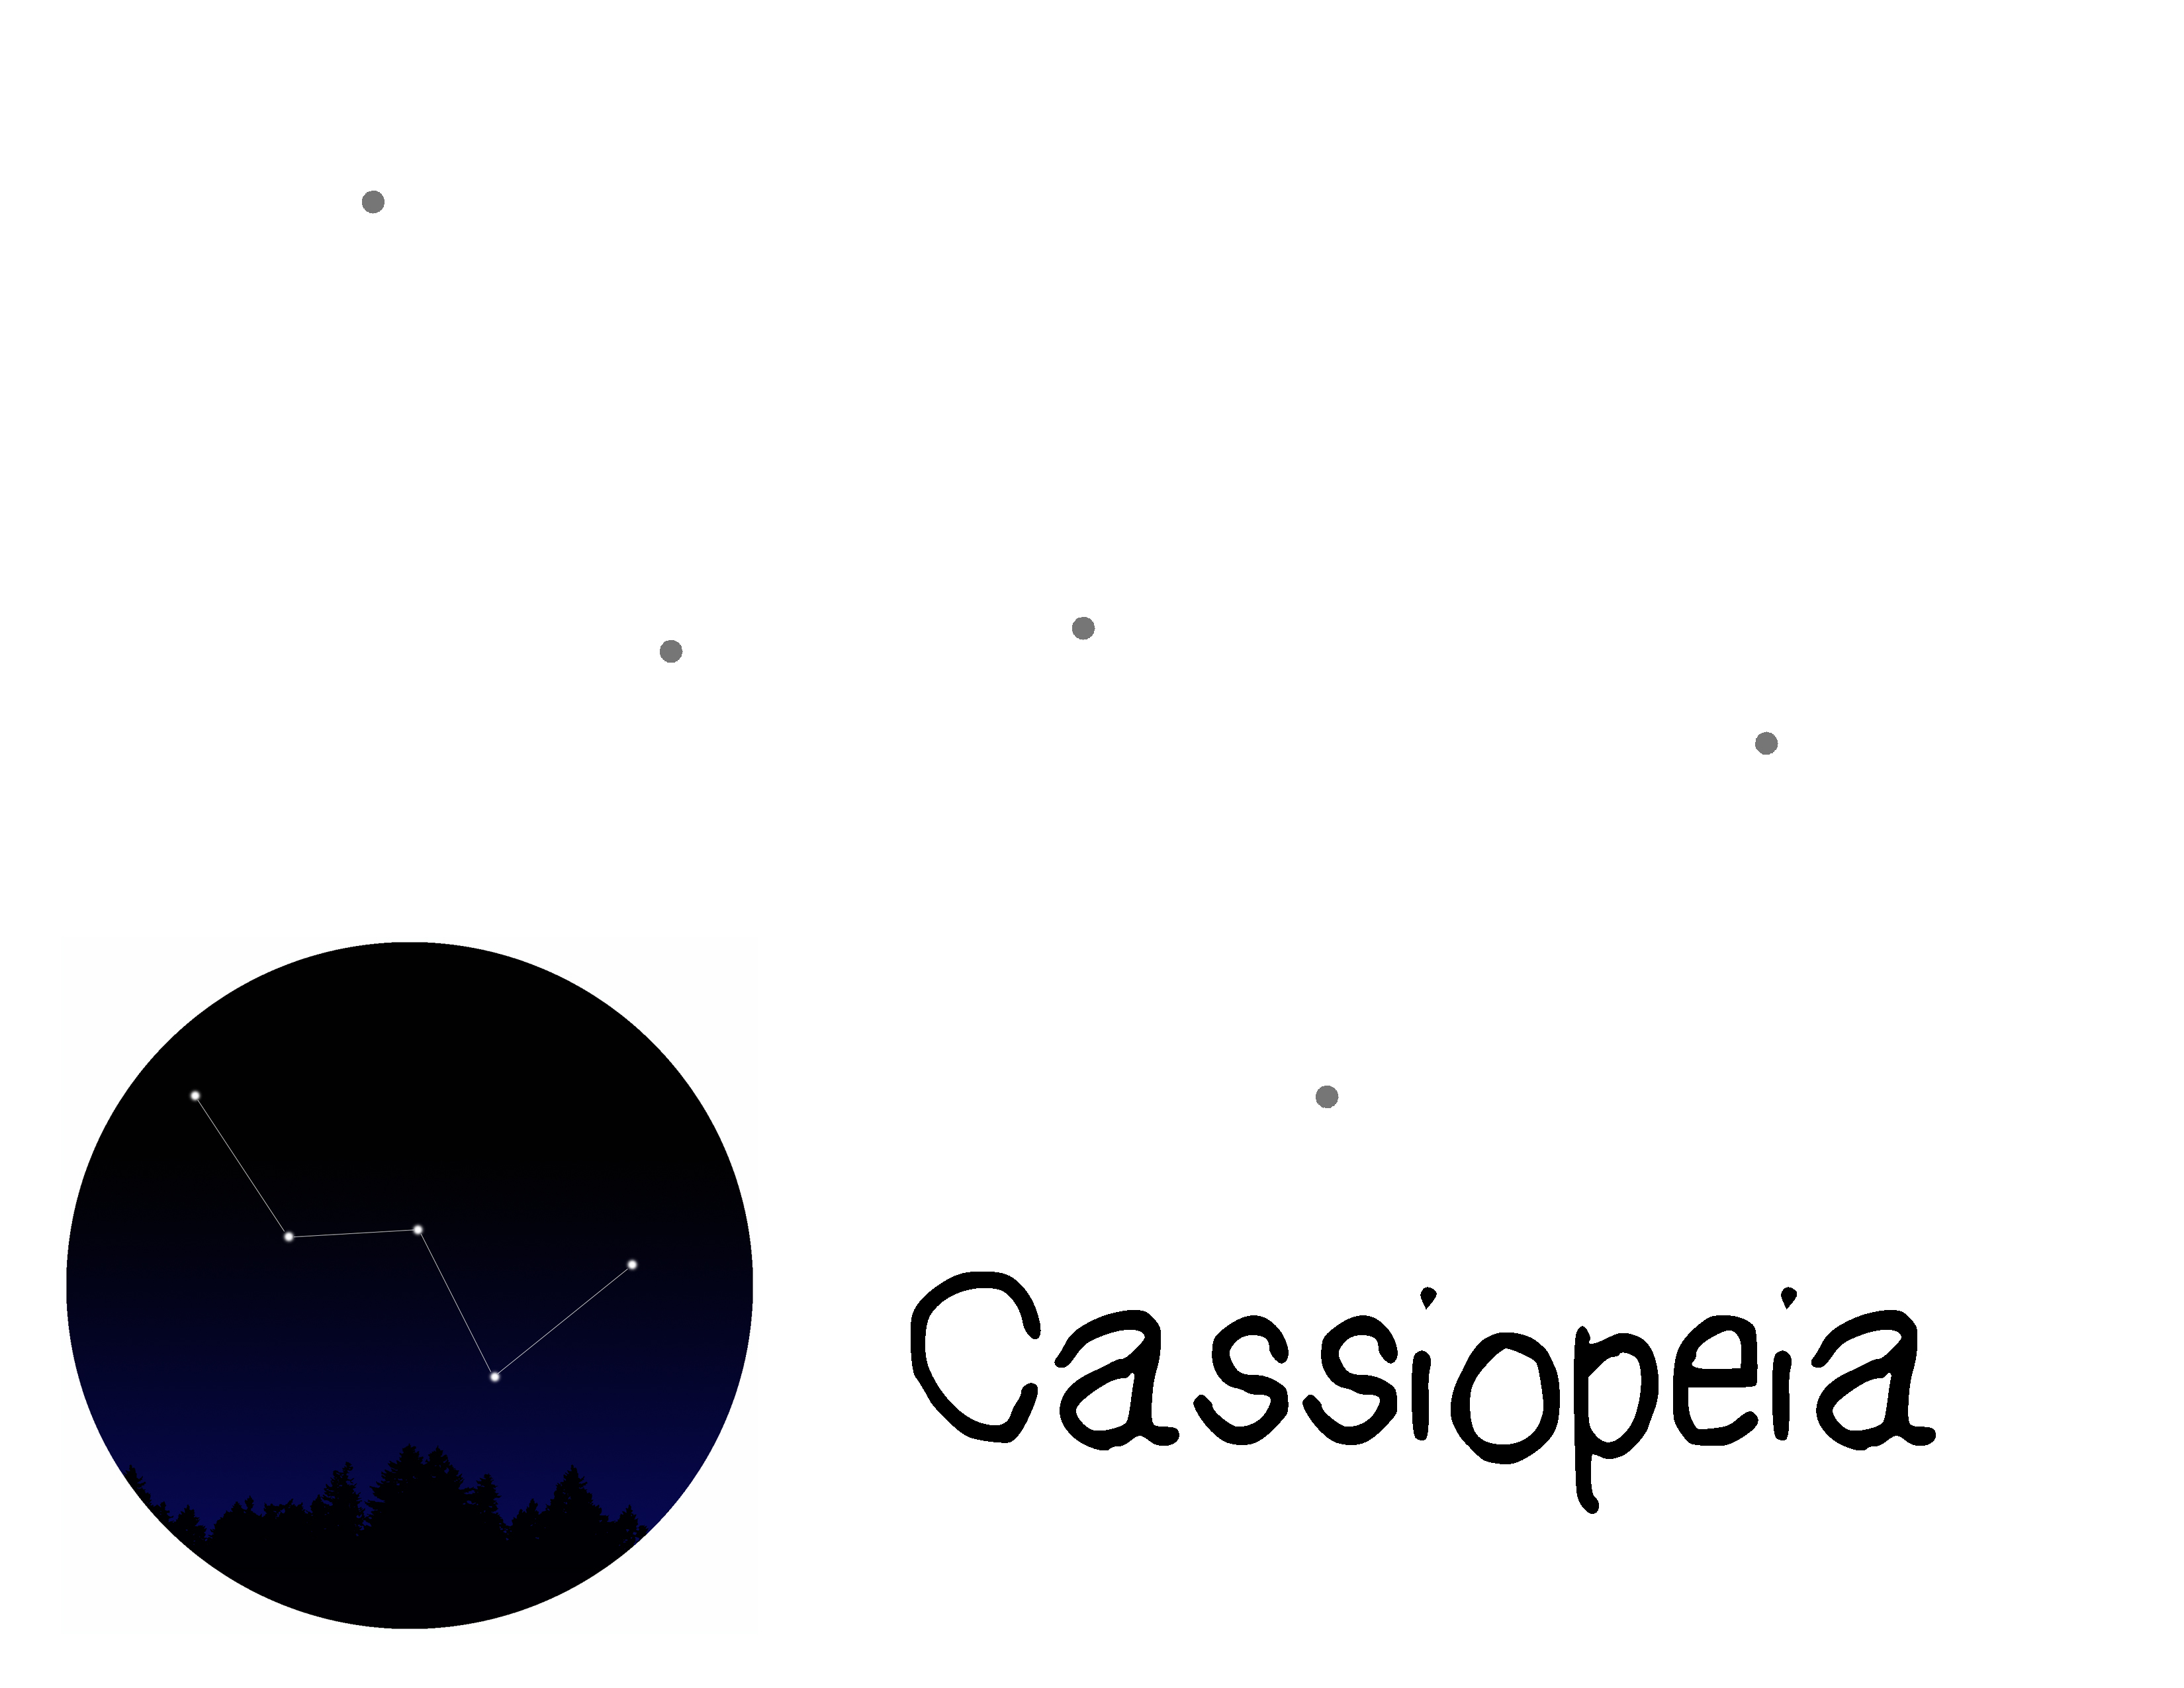 Cassiopeia Worksheet